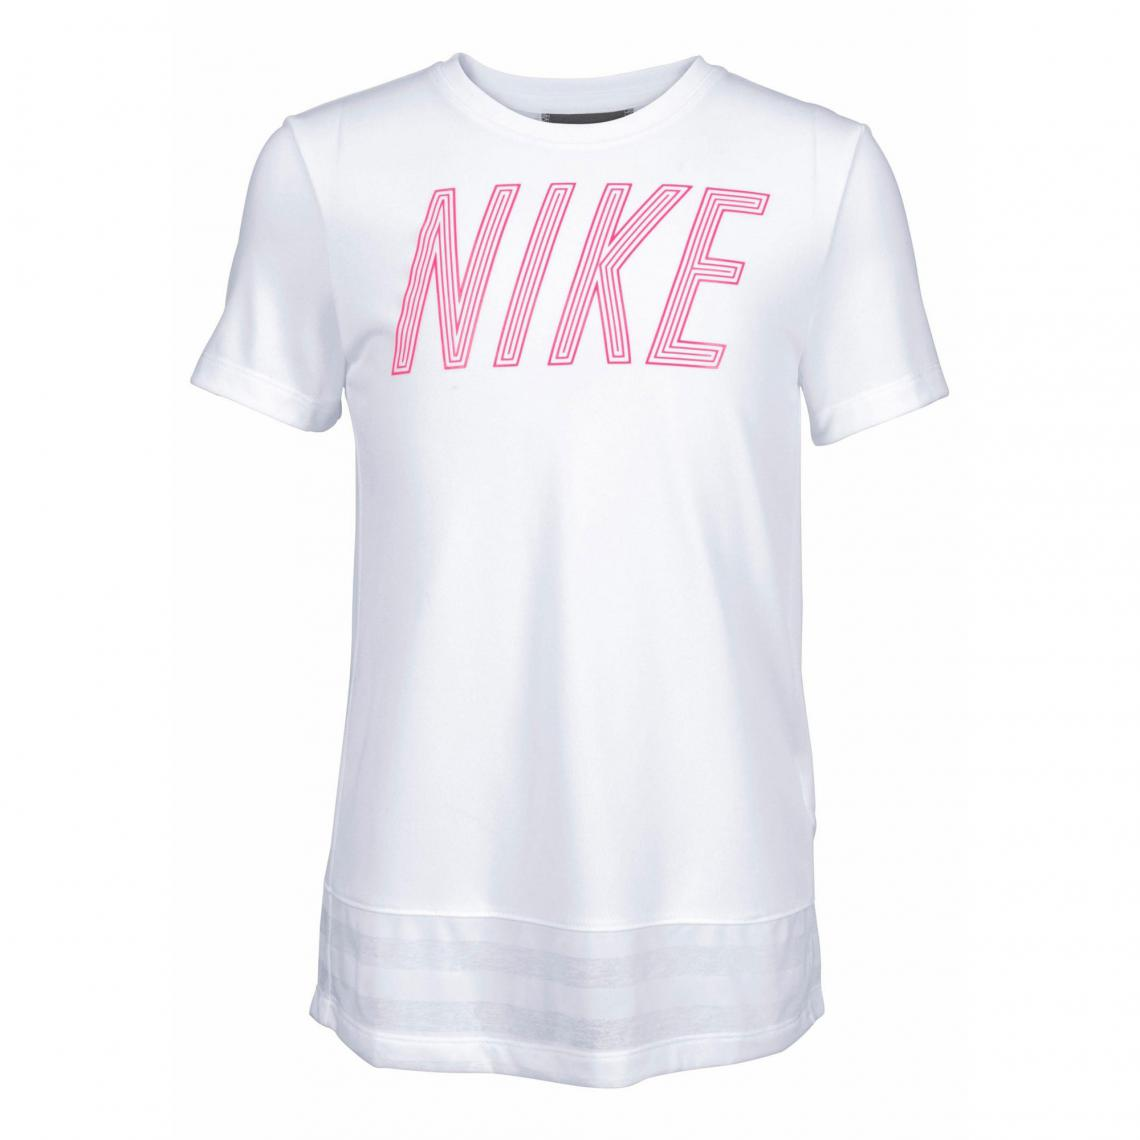 02a7203380b T-shirt col rond manches courtes fille Dri-FIT® Nike - Blanc Nike